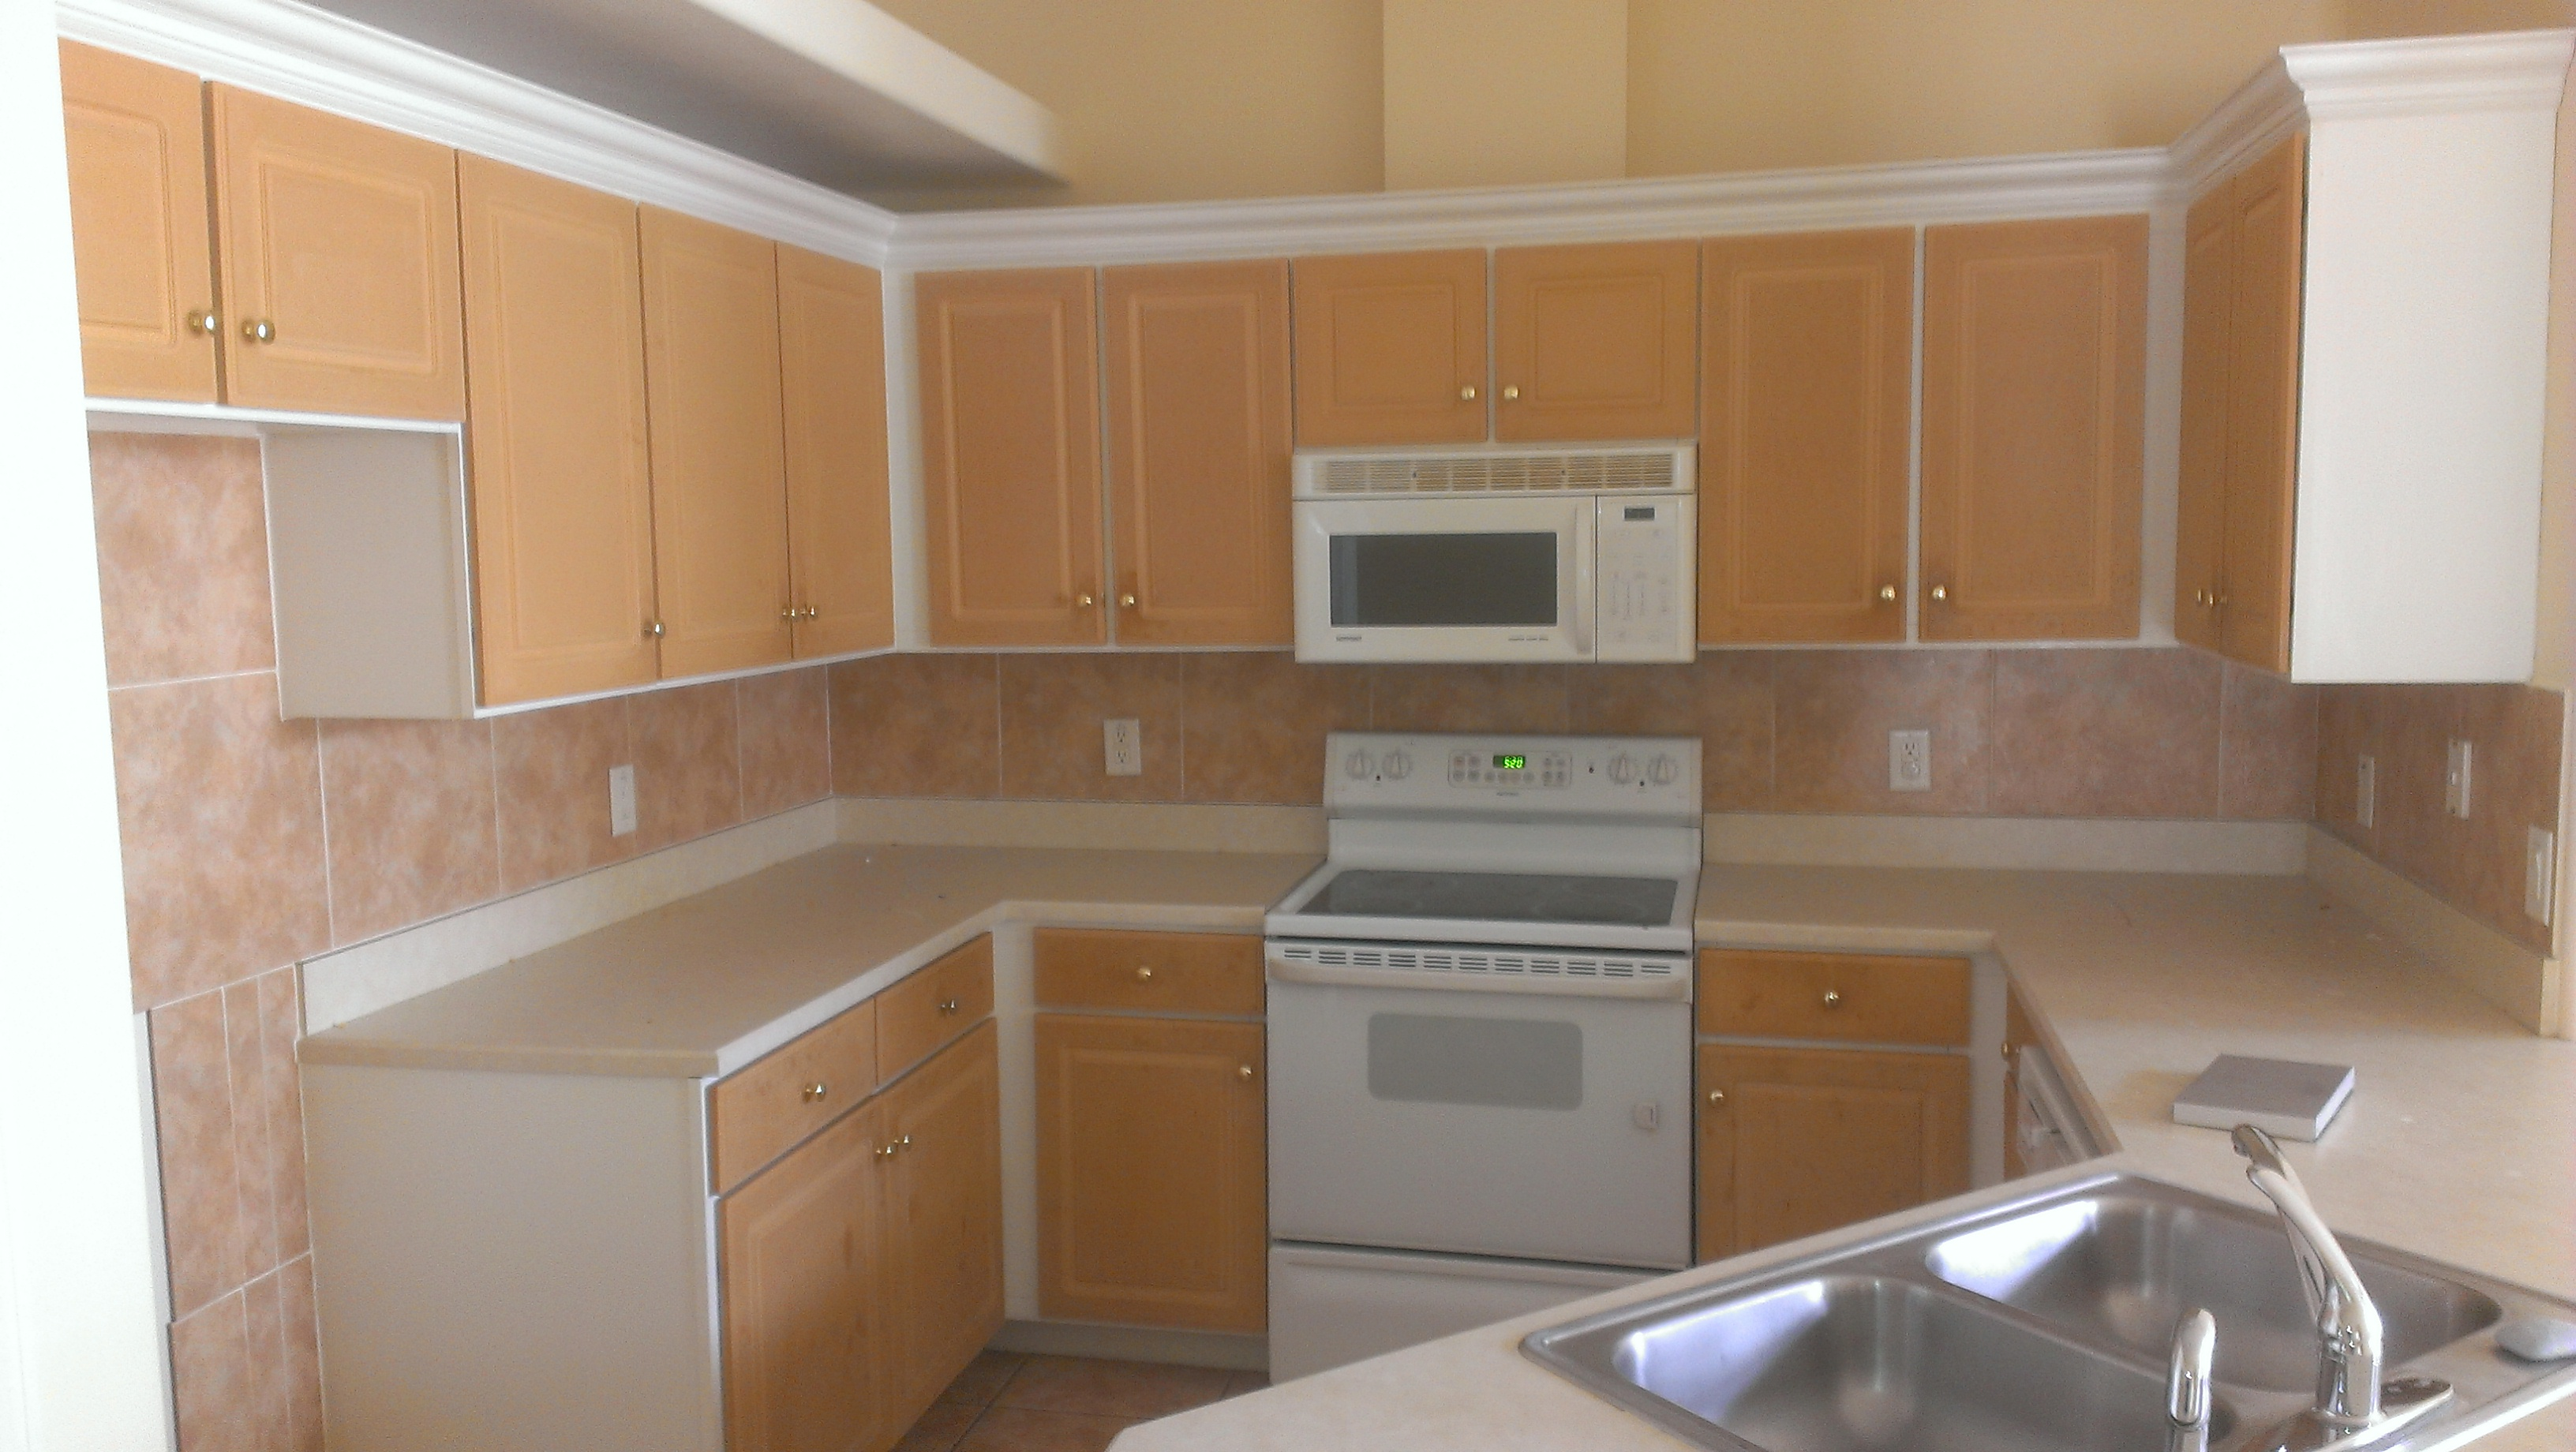 Cabinet refinishing expert in daytona beach florida for Making old kitchen cabinets look modern